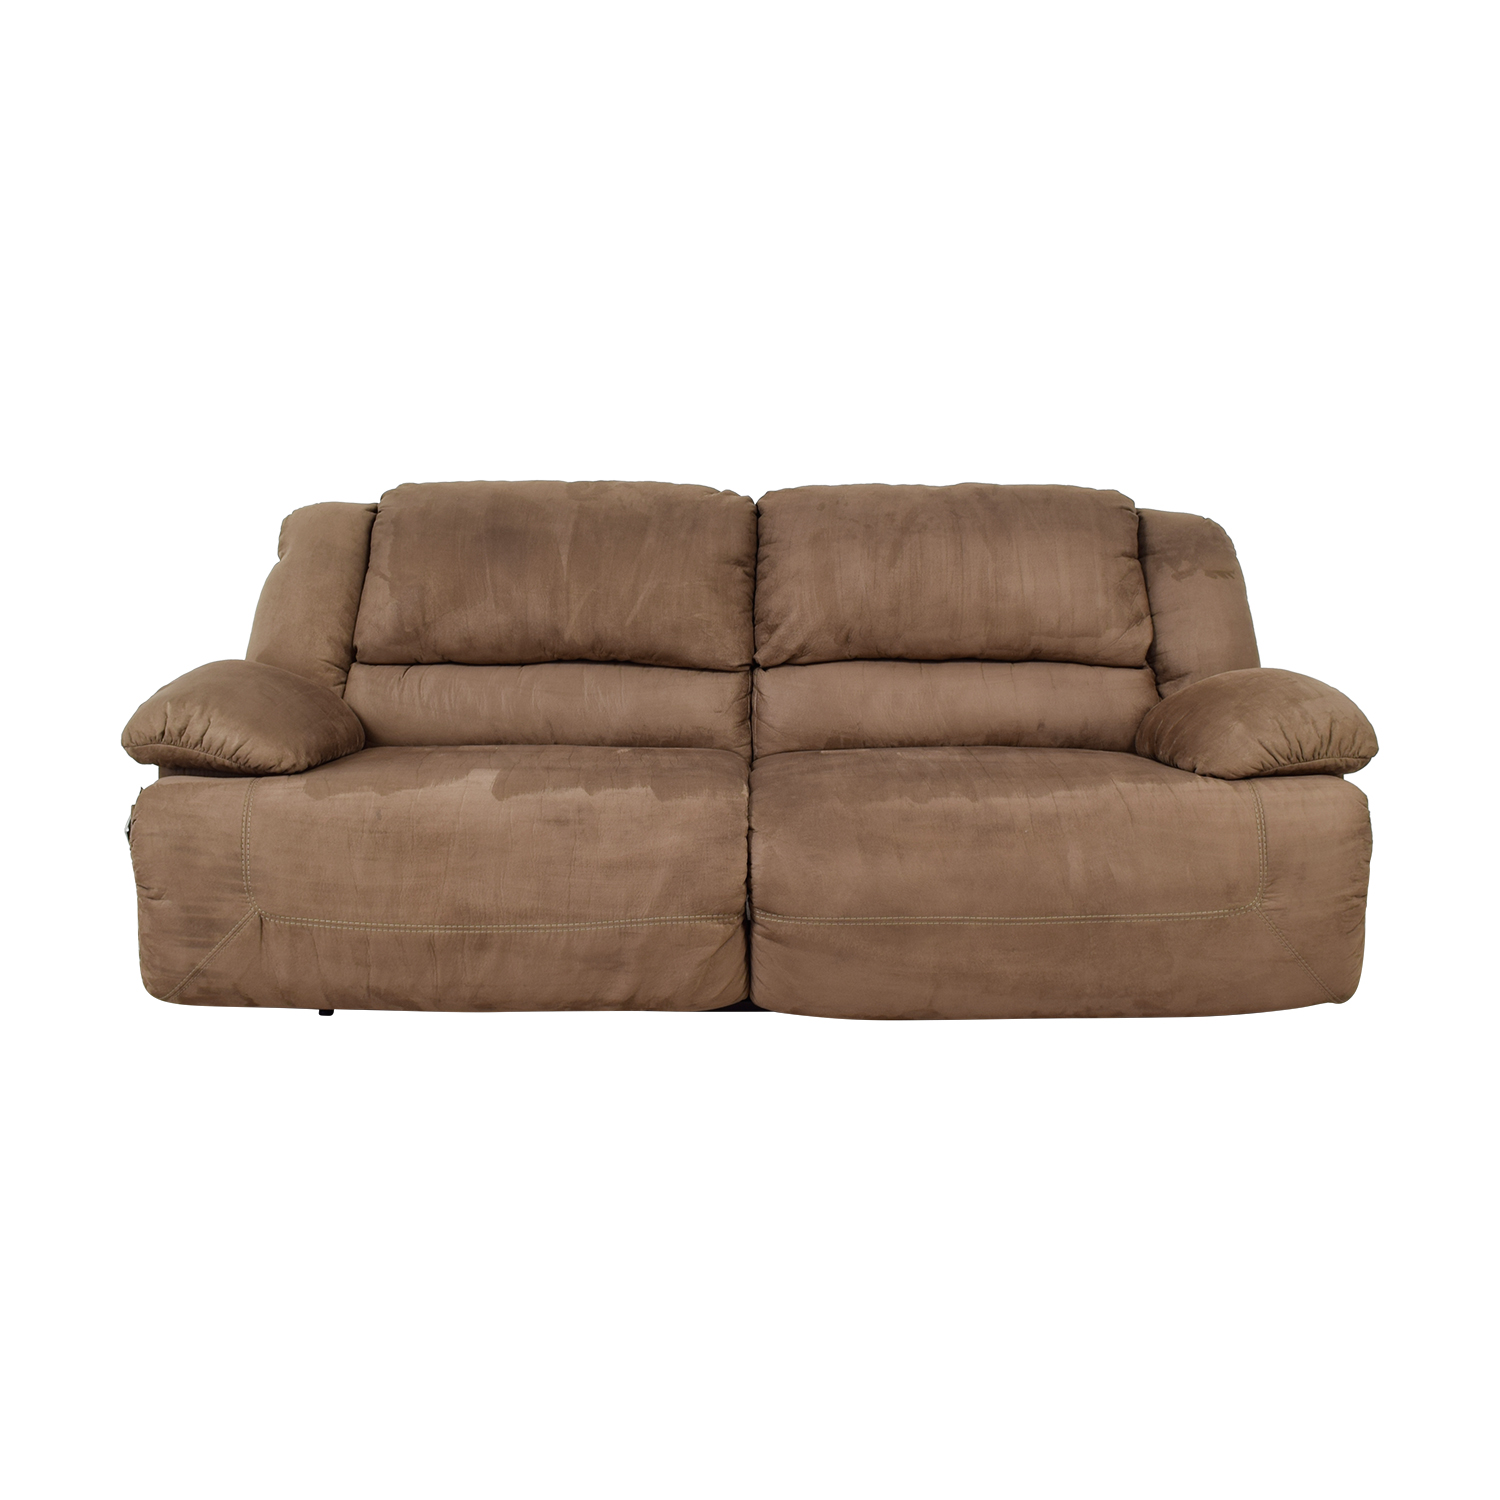 Ashley Furniture Ashley Furniture Mocha Reclining Sofa for sale